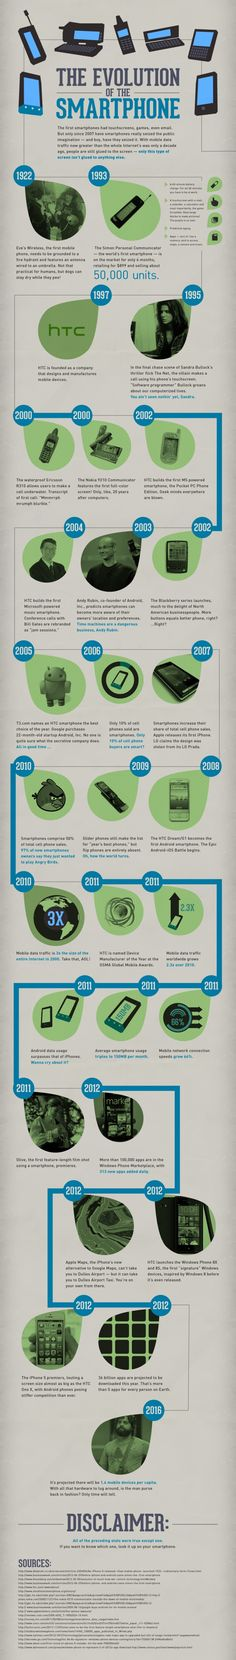 The evolution of smartphone, someone likes android...